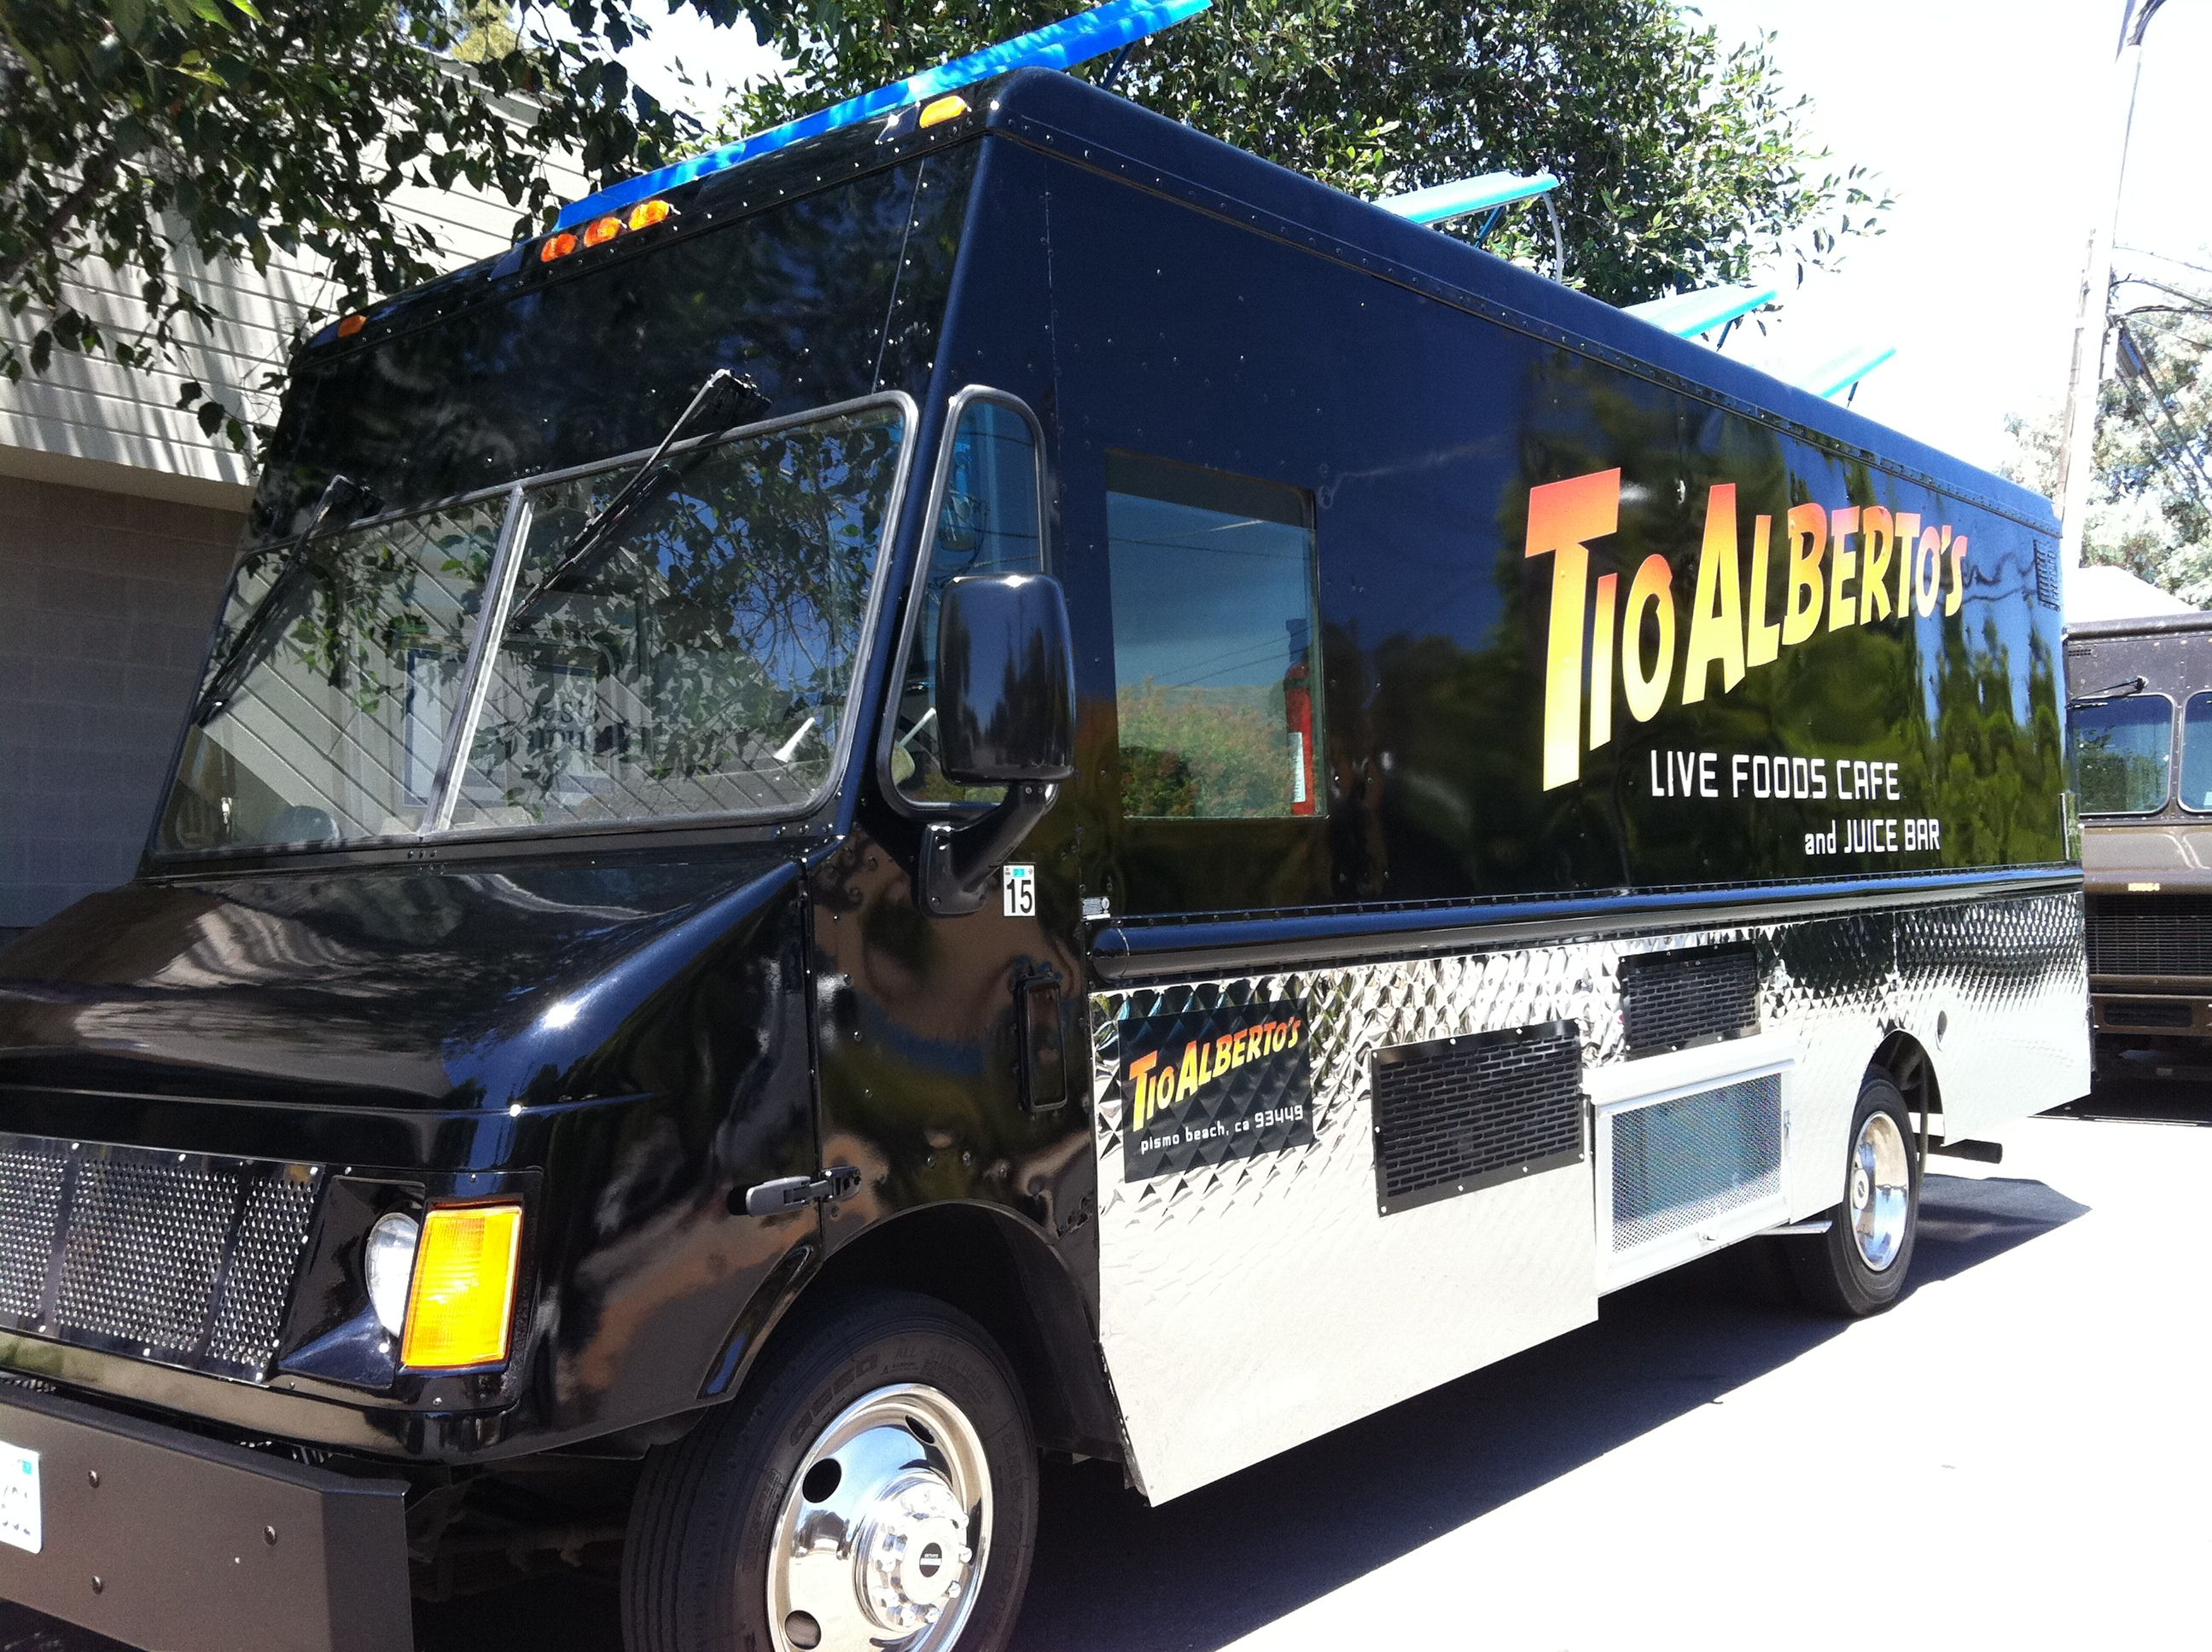 Food truck fridays at tolosa winery see you there